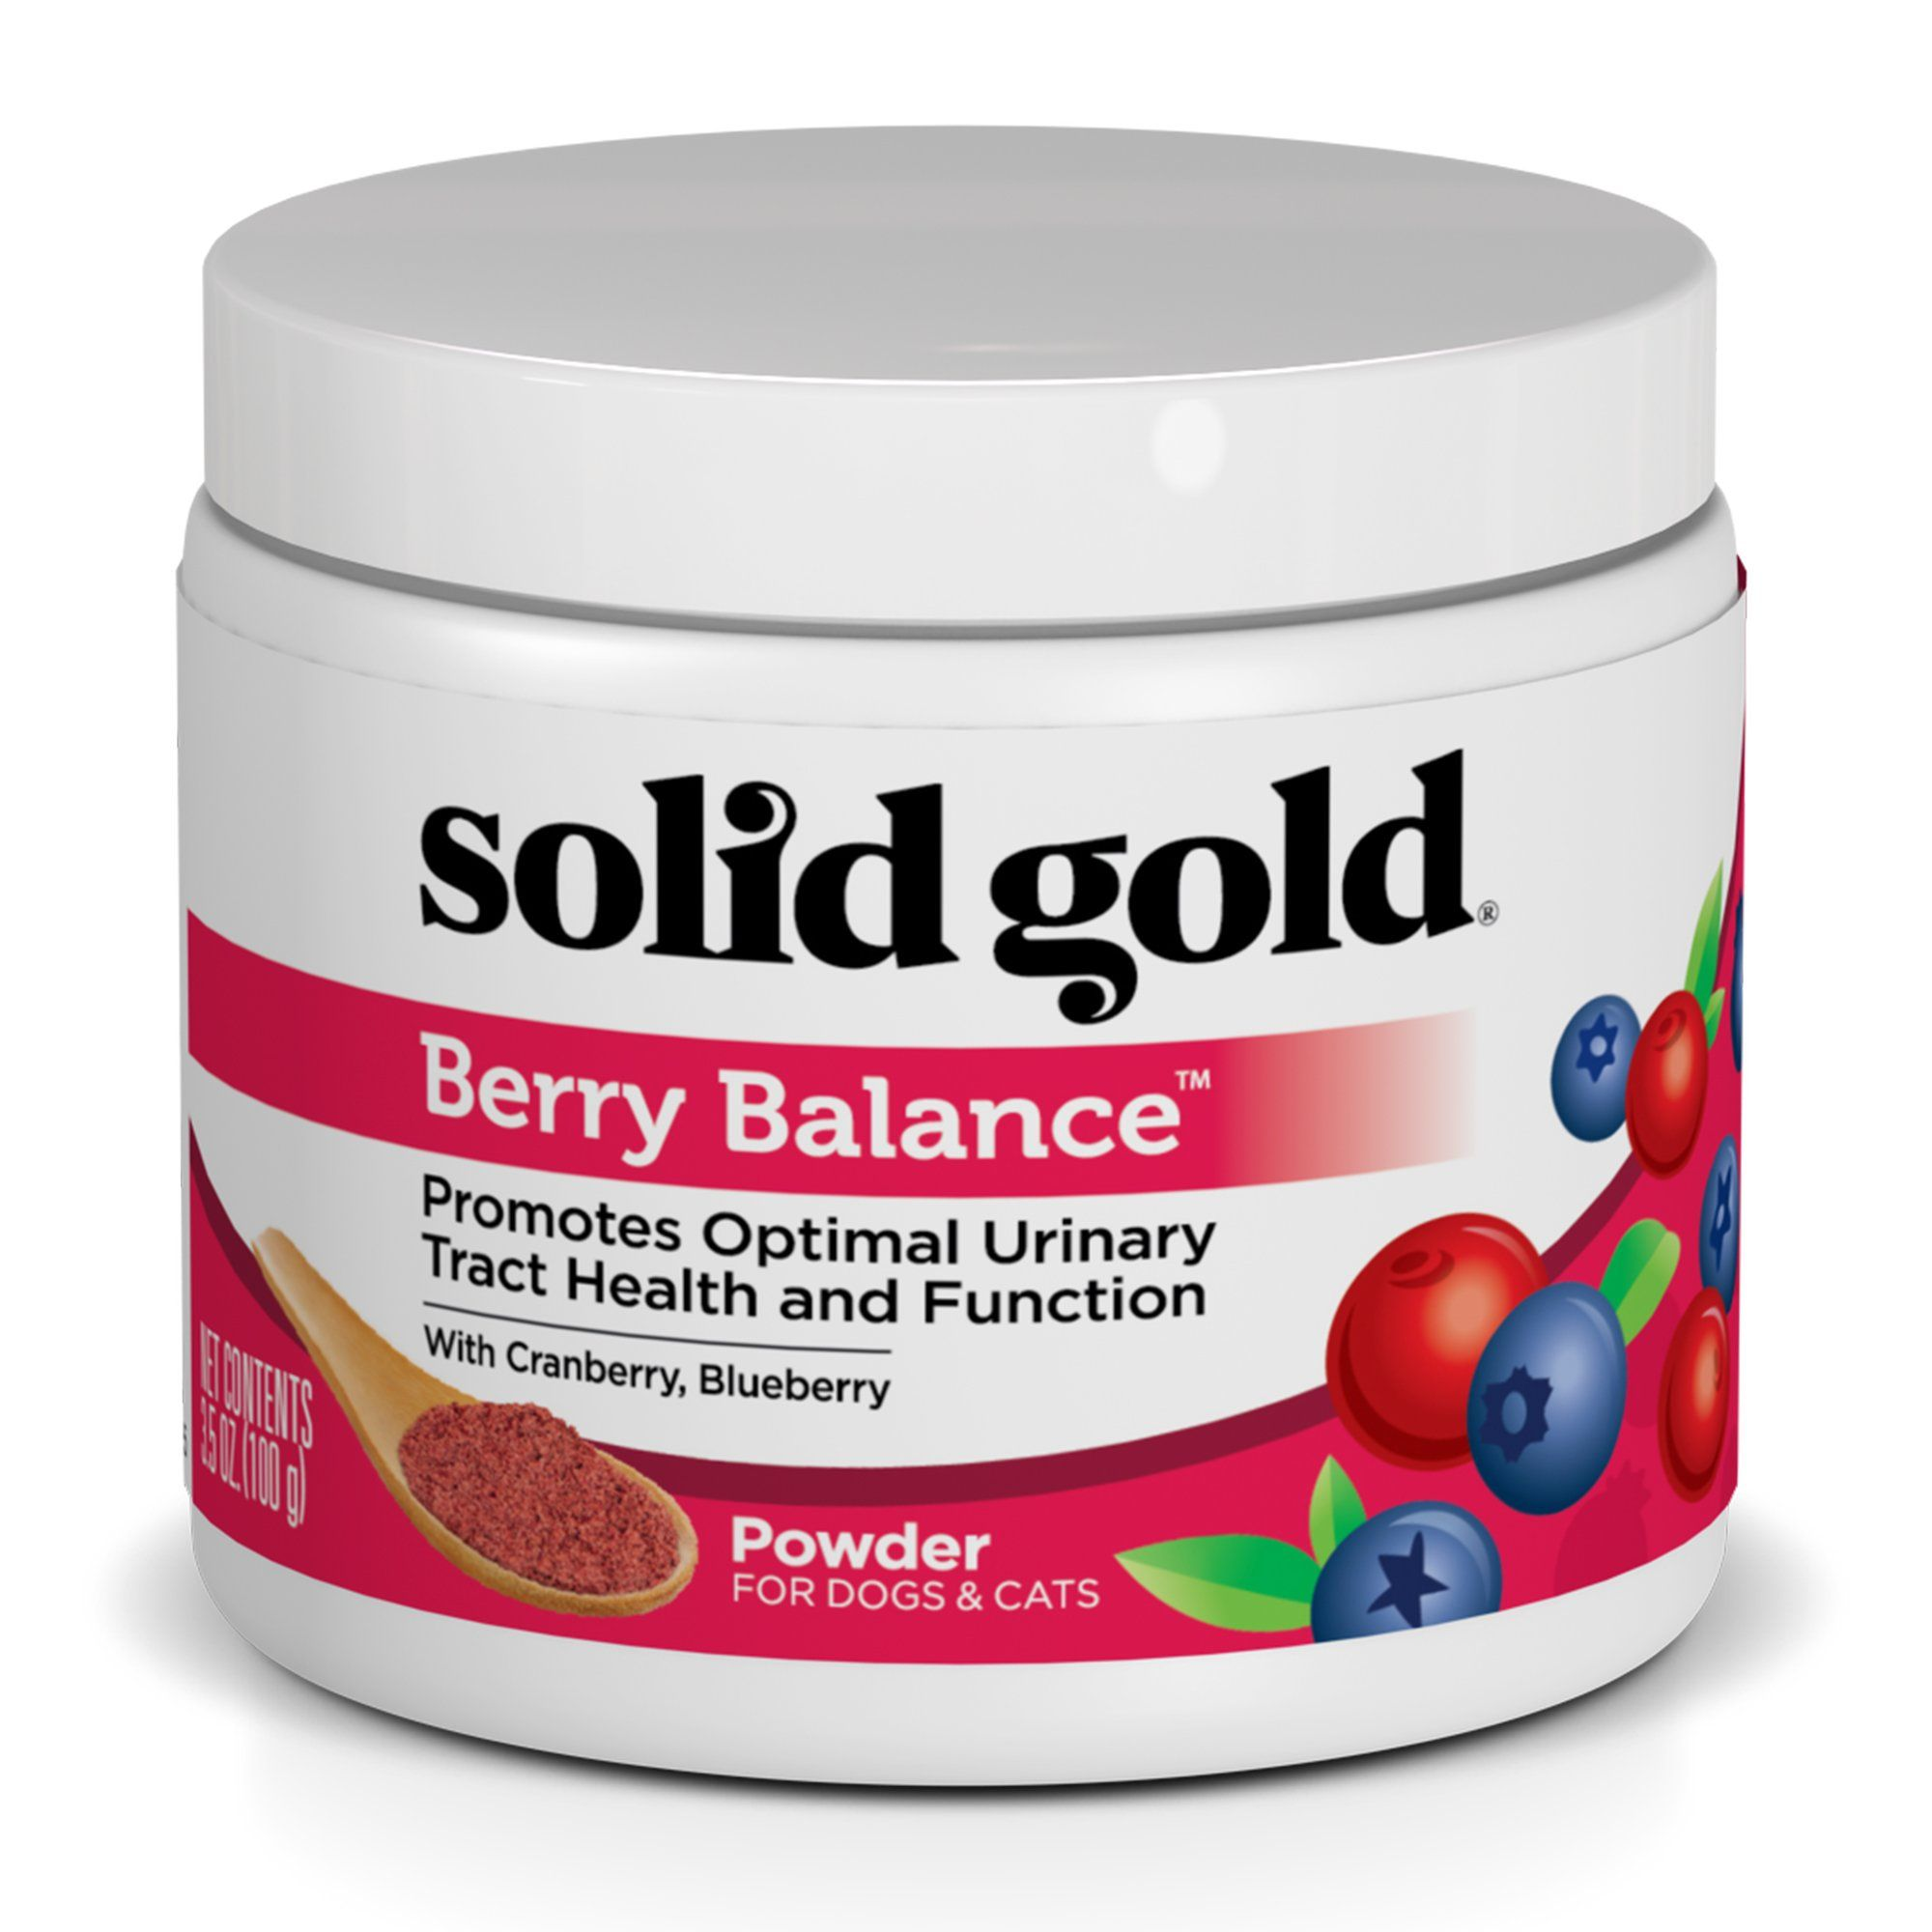 Solid Gold Berry Balance Supplement Powder For Urinary Tract Health With Cranberries Blueberries For Dogs Cats 3 5 Oz Cat Supplements Cat Vitamins Cat Supplement